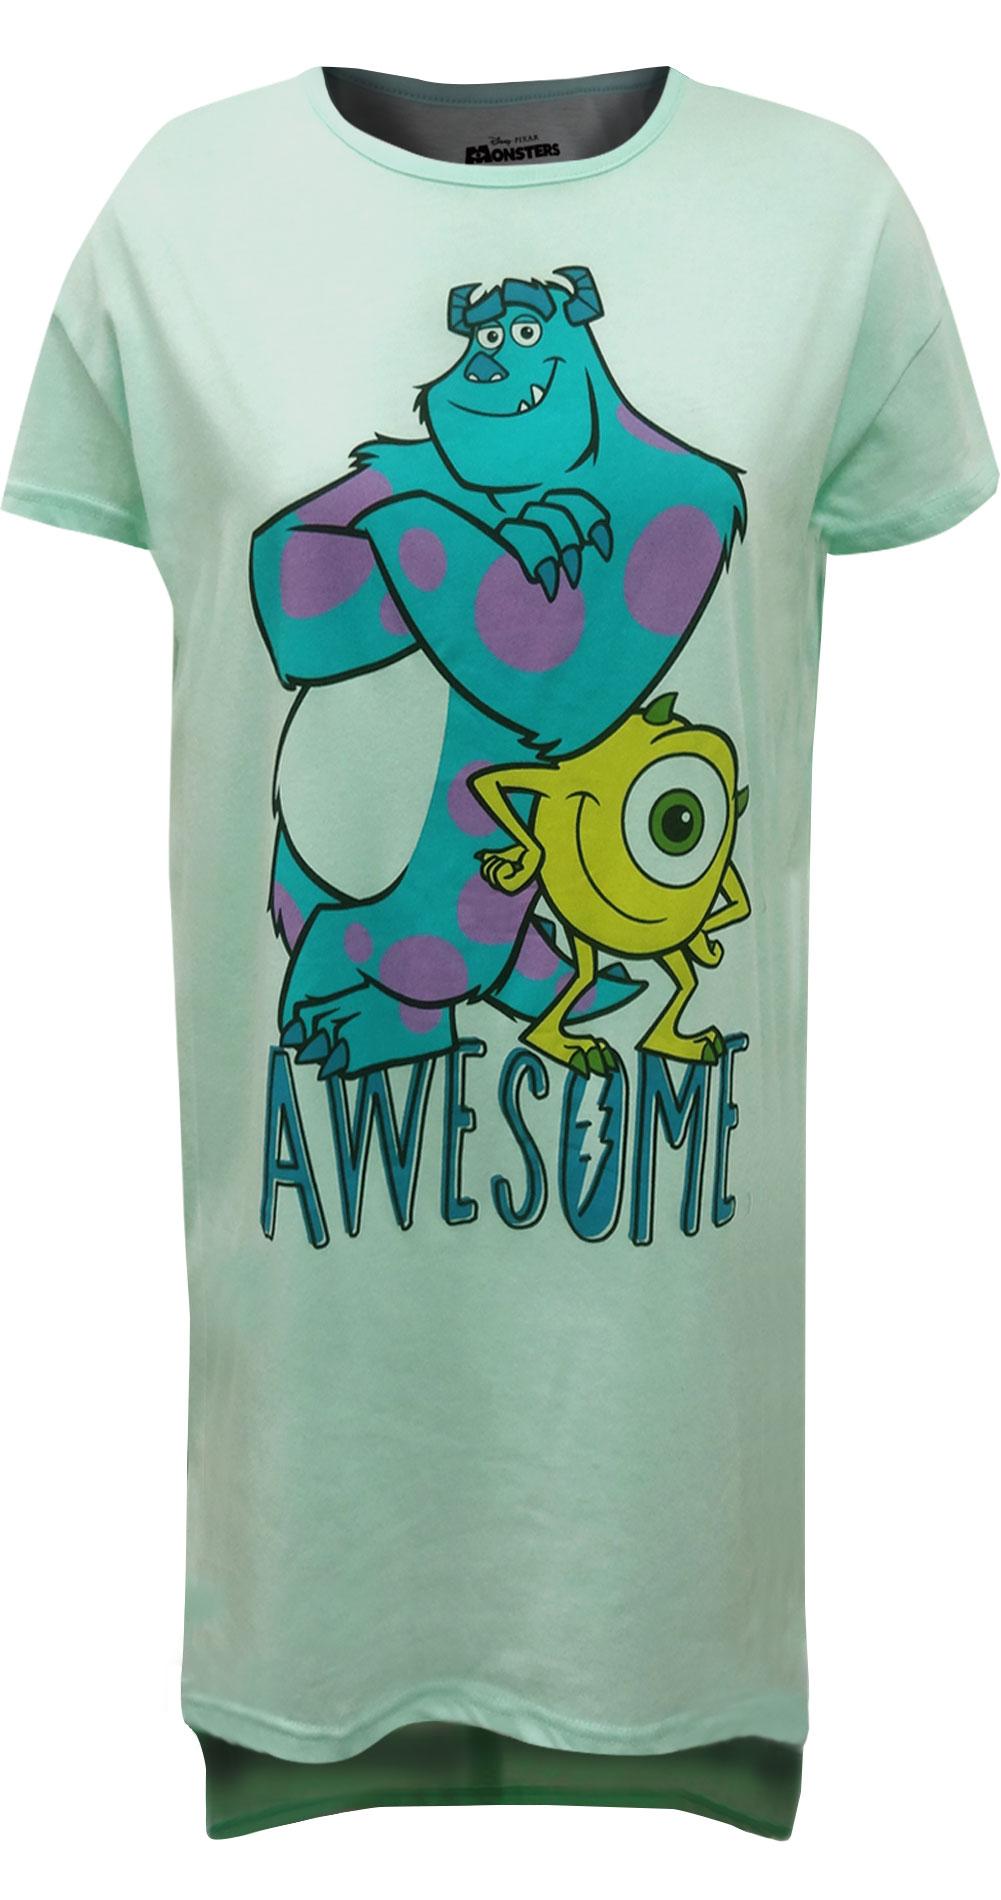 Image of Disney Pixar Monsters Inc Mike And Sulley Ladies Night Shirt for women